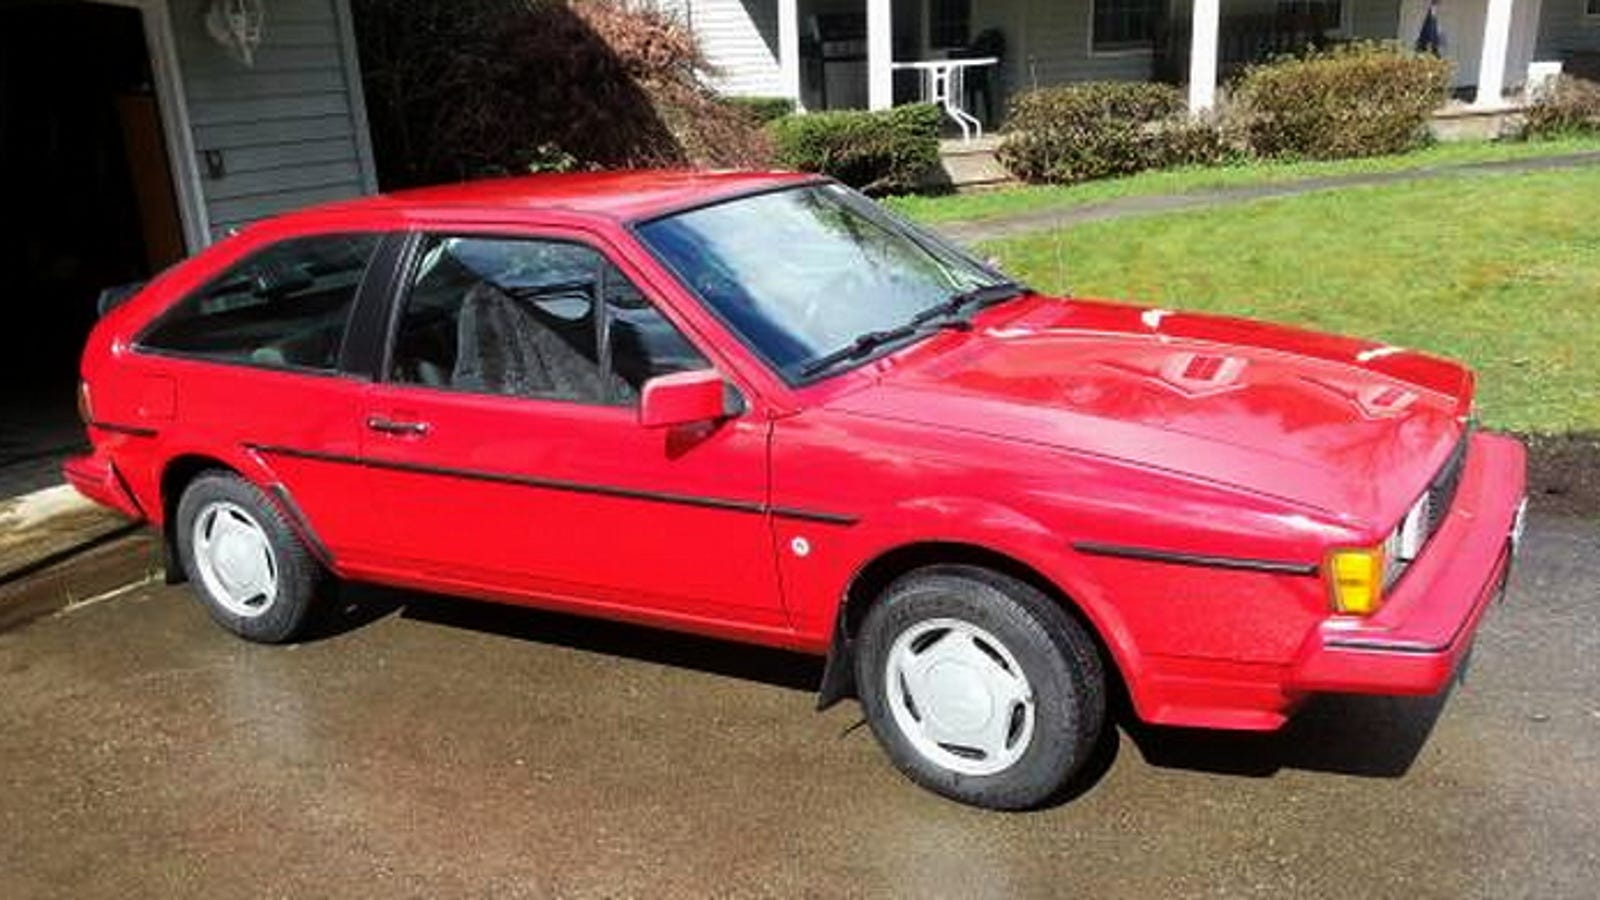 For $6,900, This 1985 VW Scirocco Might Be All That